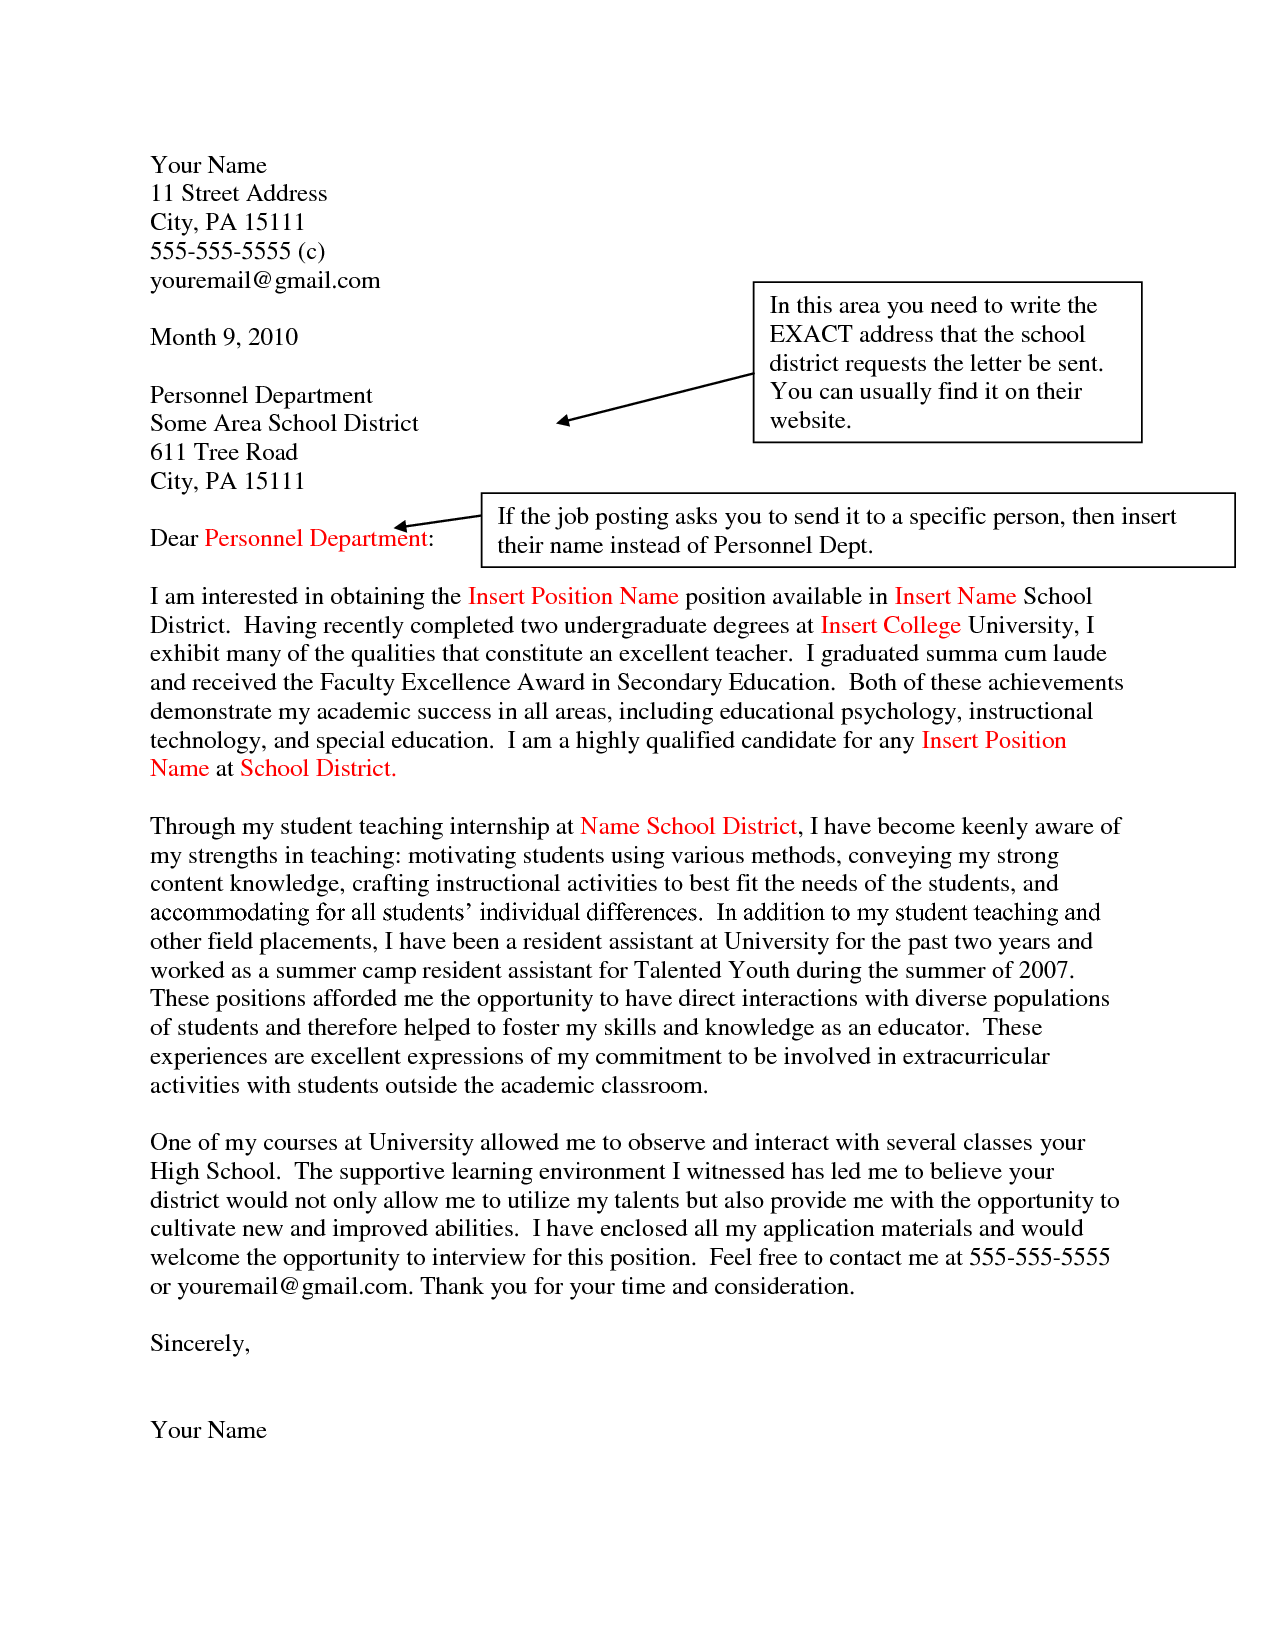 Letter Of Interest Cover Letter Sample Letters of Interest for Job Openings